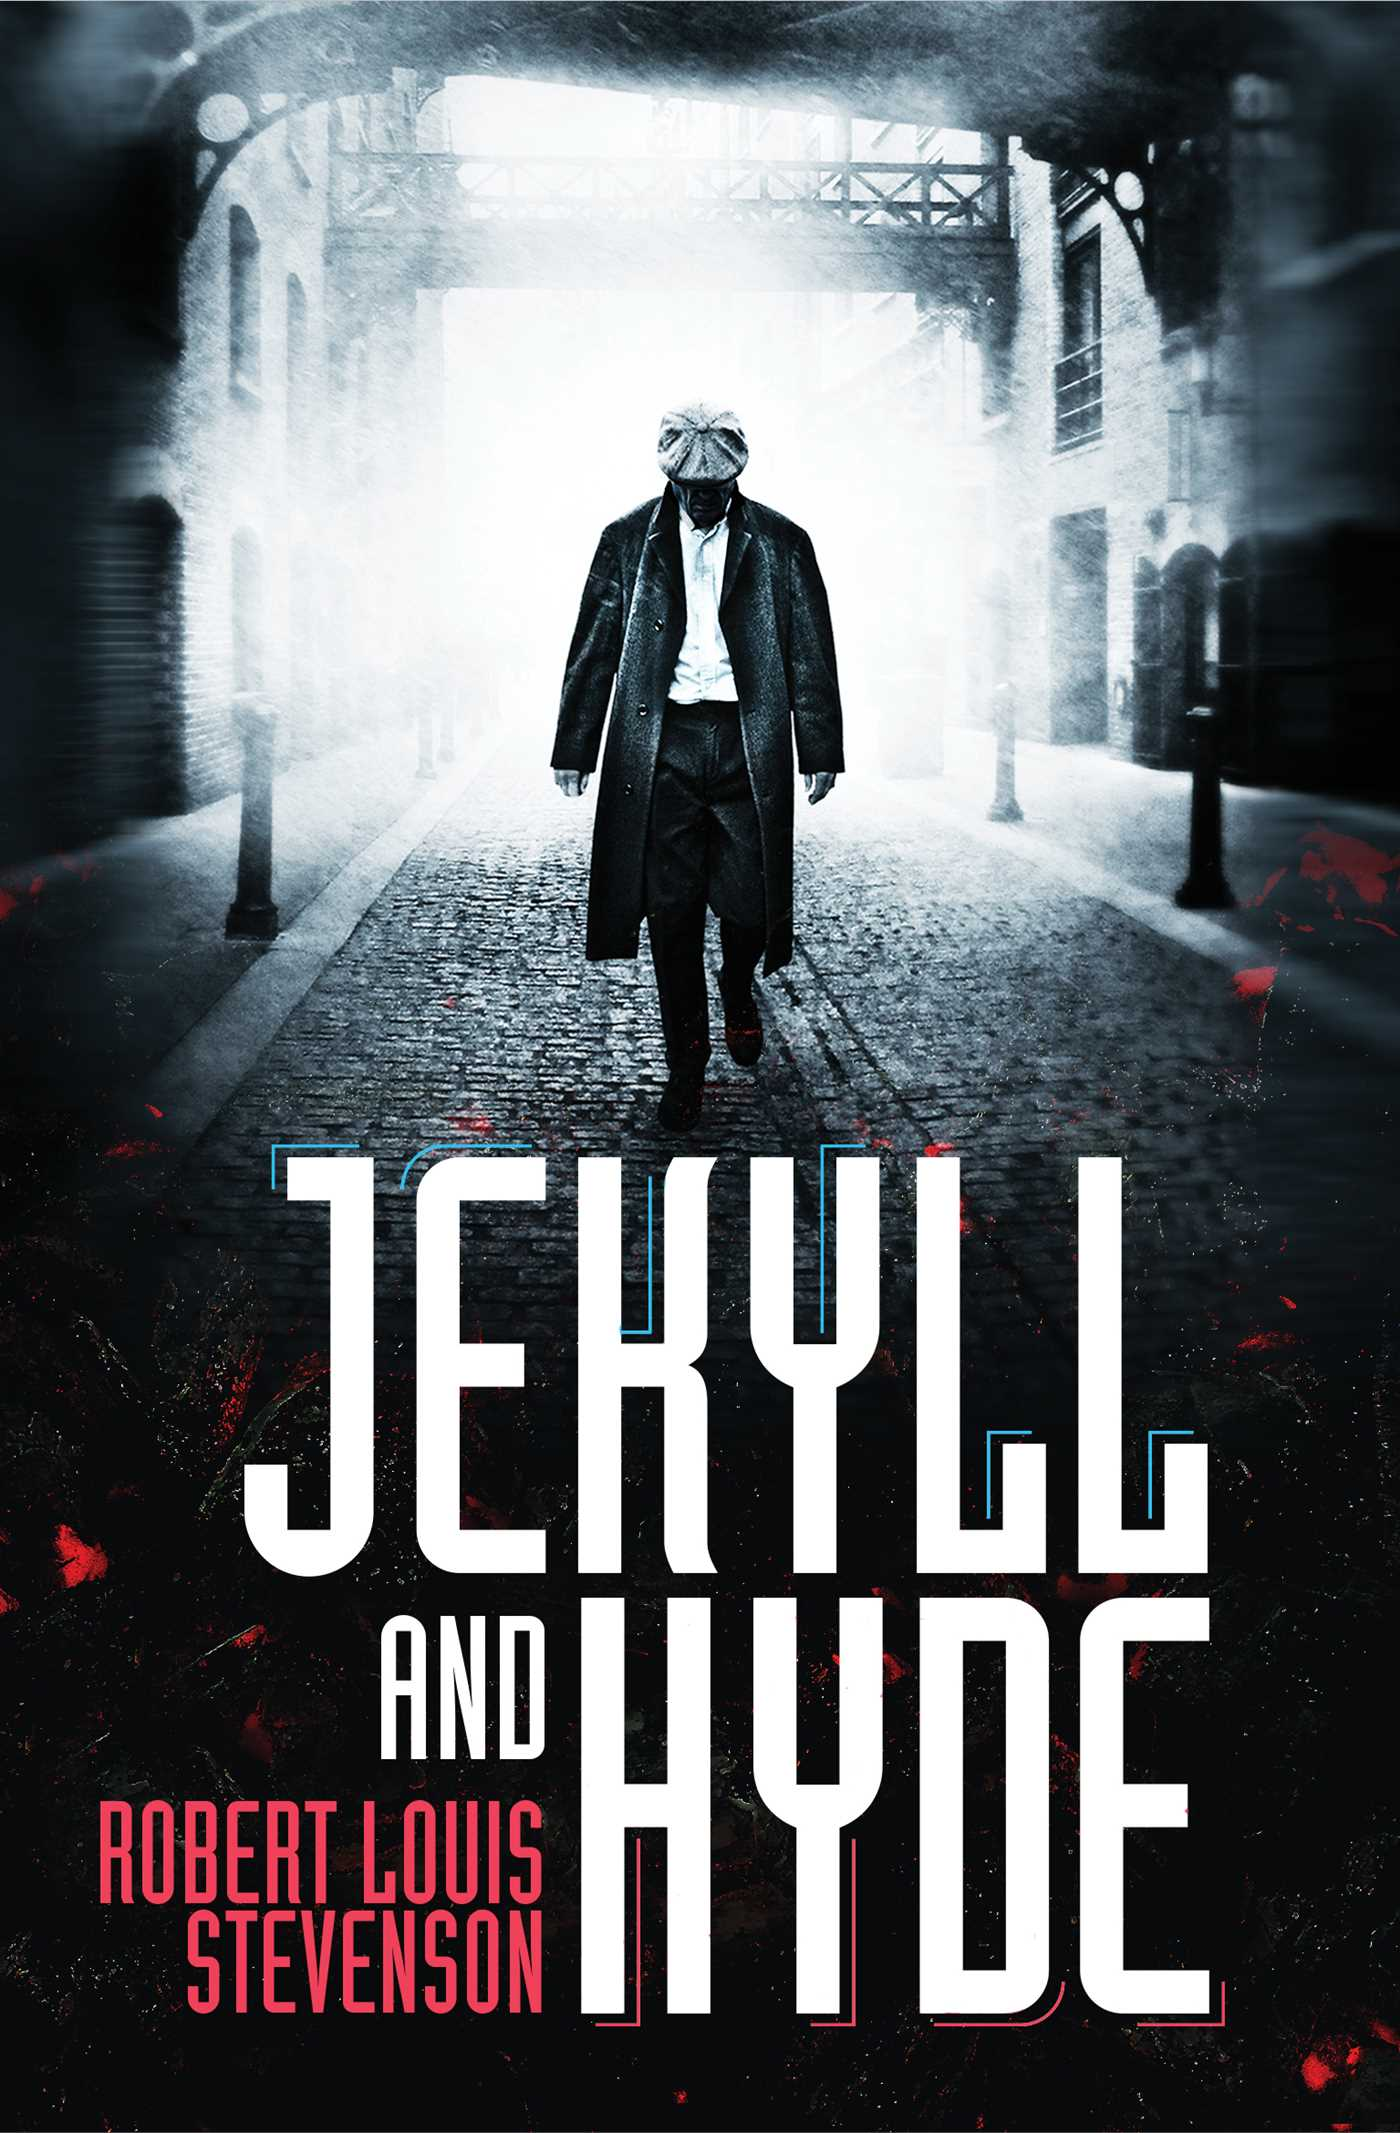 Jekyll and hyde 9781471147418 hr